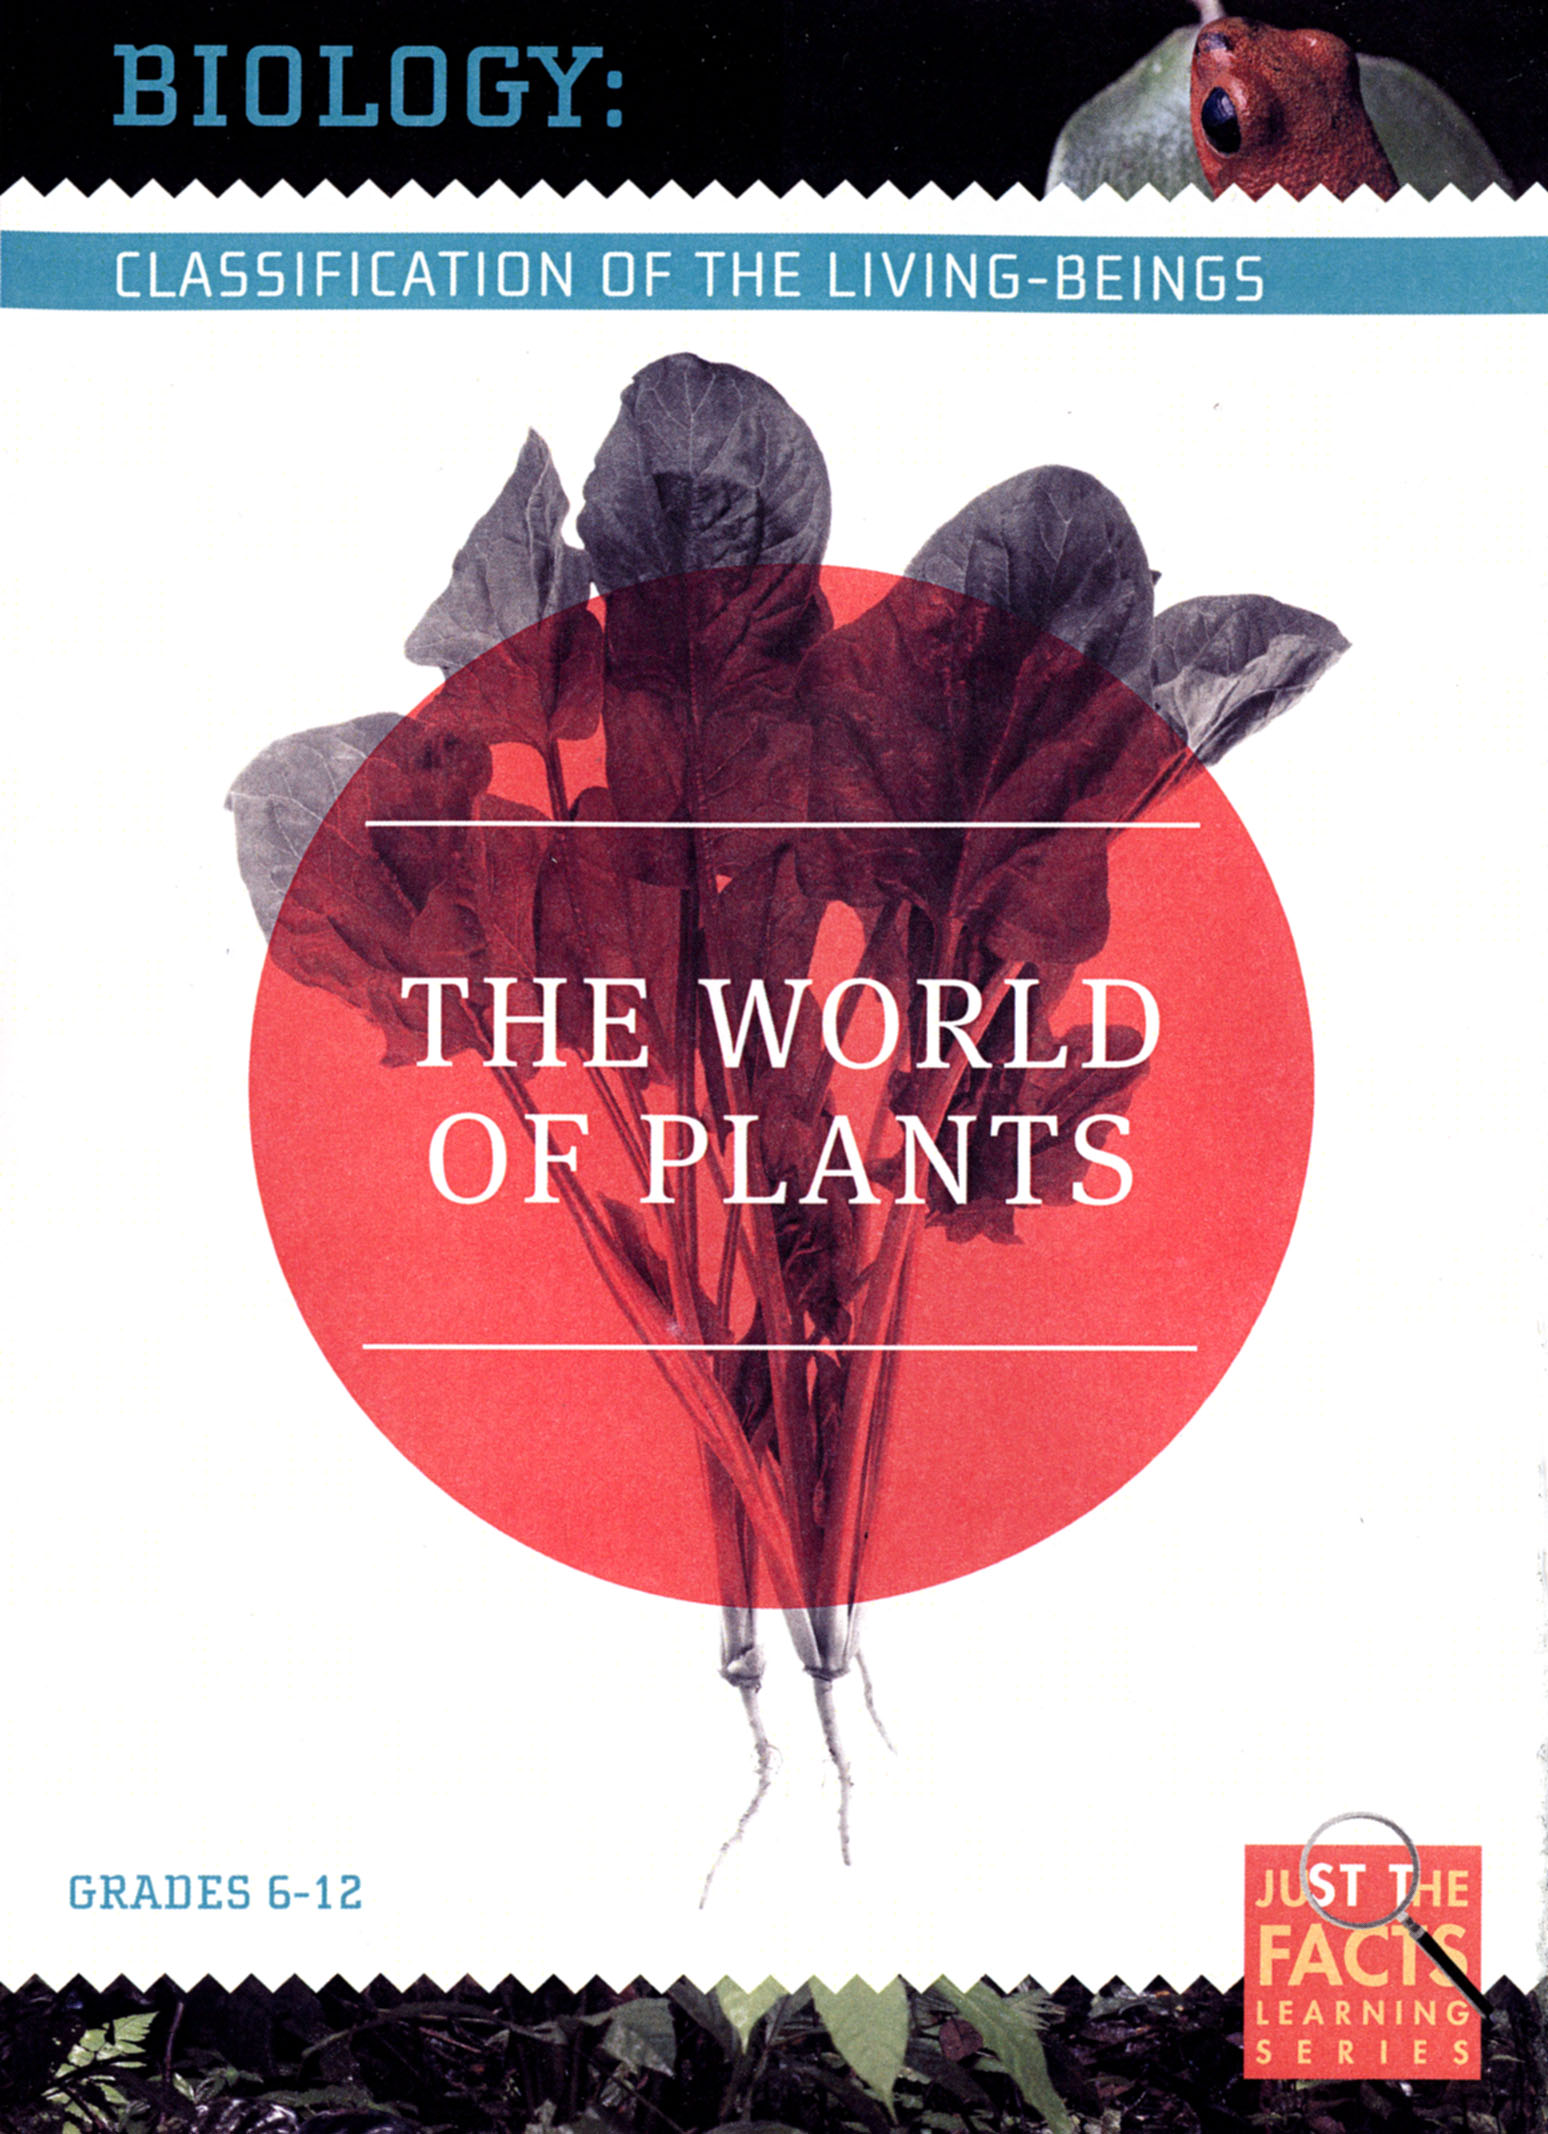 Biology Classification: The World of Plants